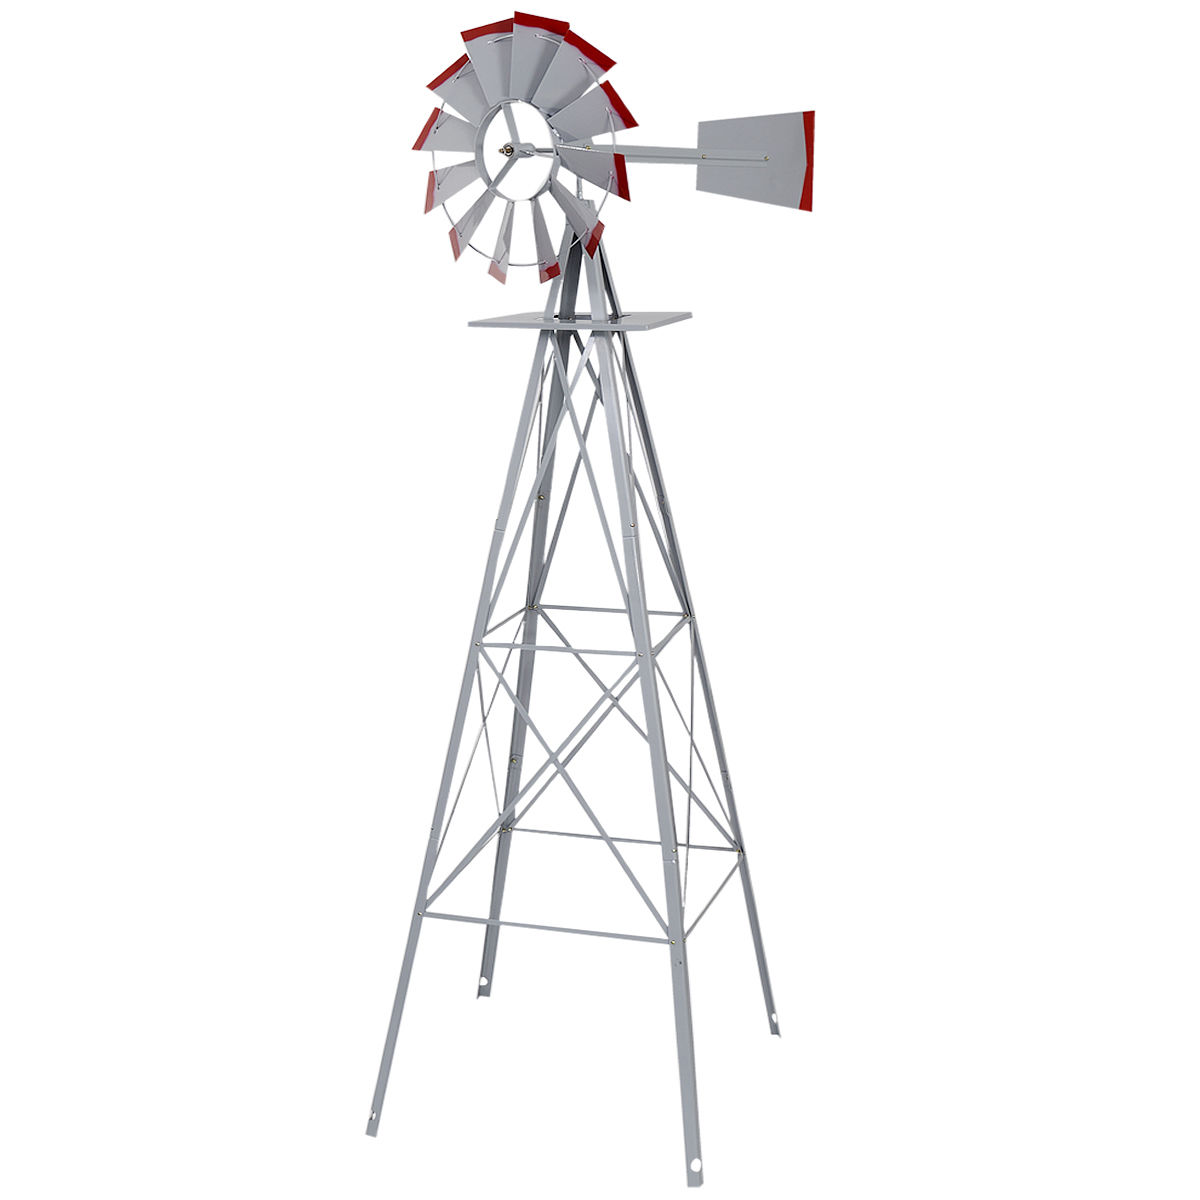 GHP 8-Feet Ornamental Wind Gray Steel Red Trimmed Blades Windmill Garden Weathervane by